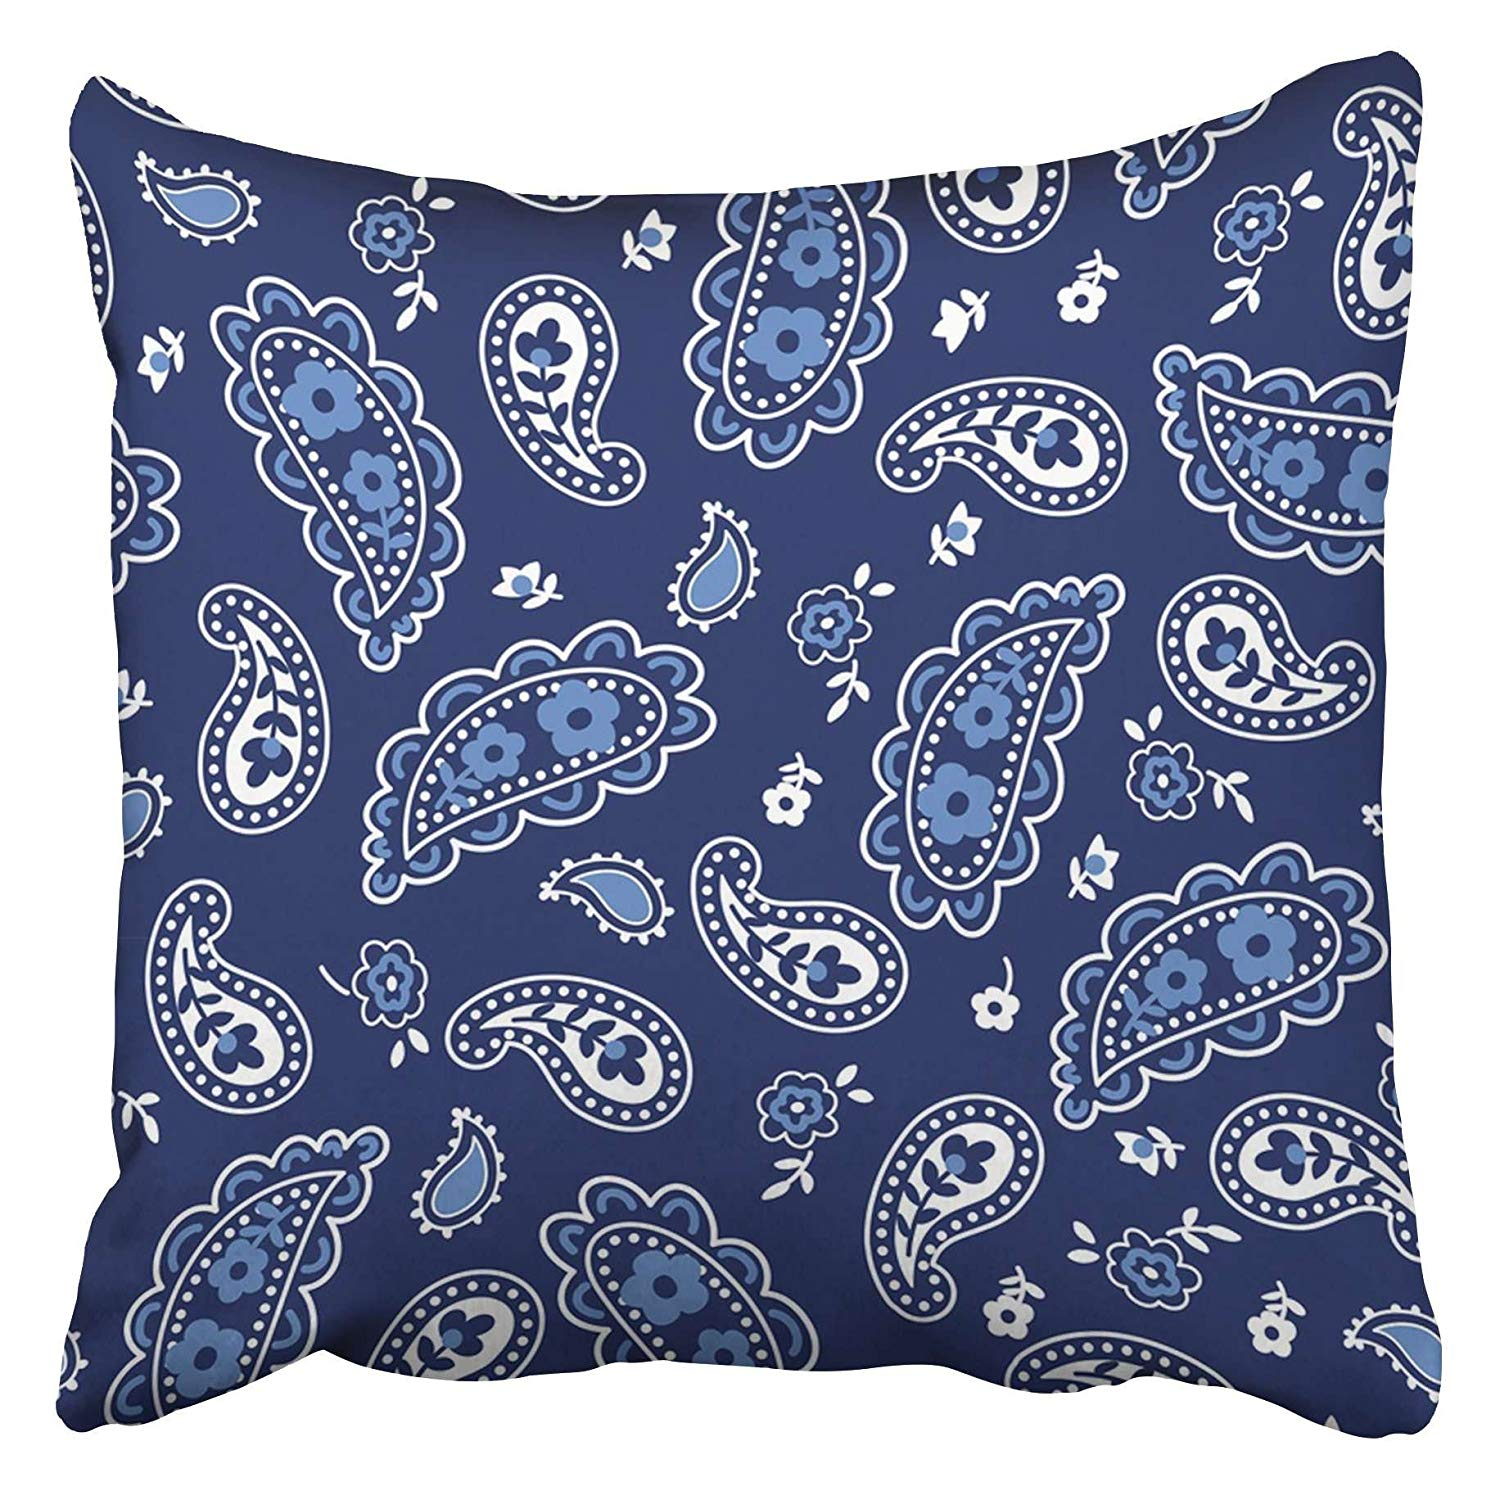 USART Navy Western Cute Bandana Paisley Pattern Blue Floral Kids Small Baby Bandanna Black Pillow Case Cushion Cover 16x16 inch